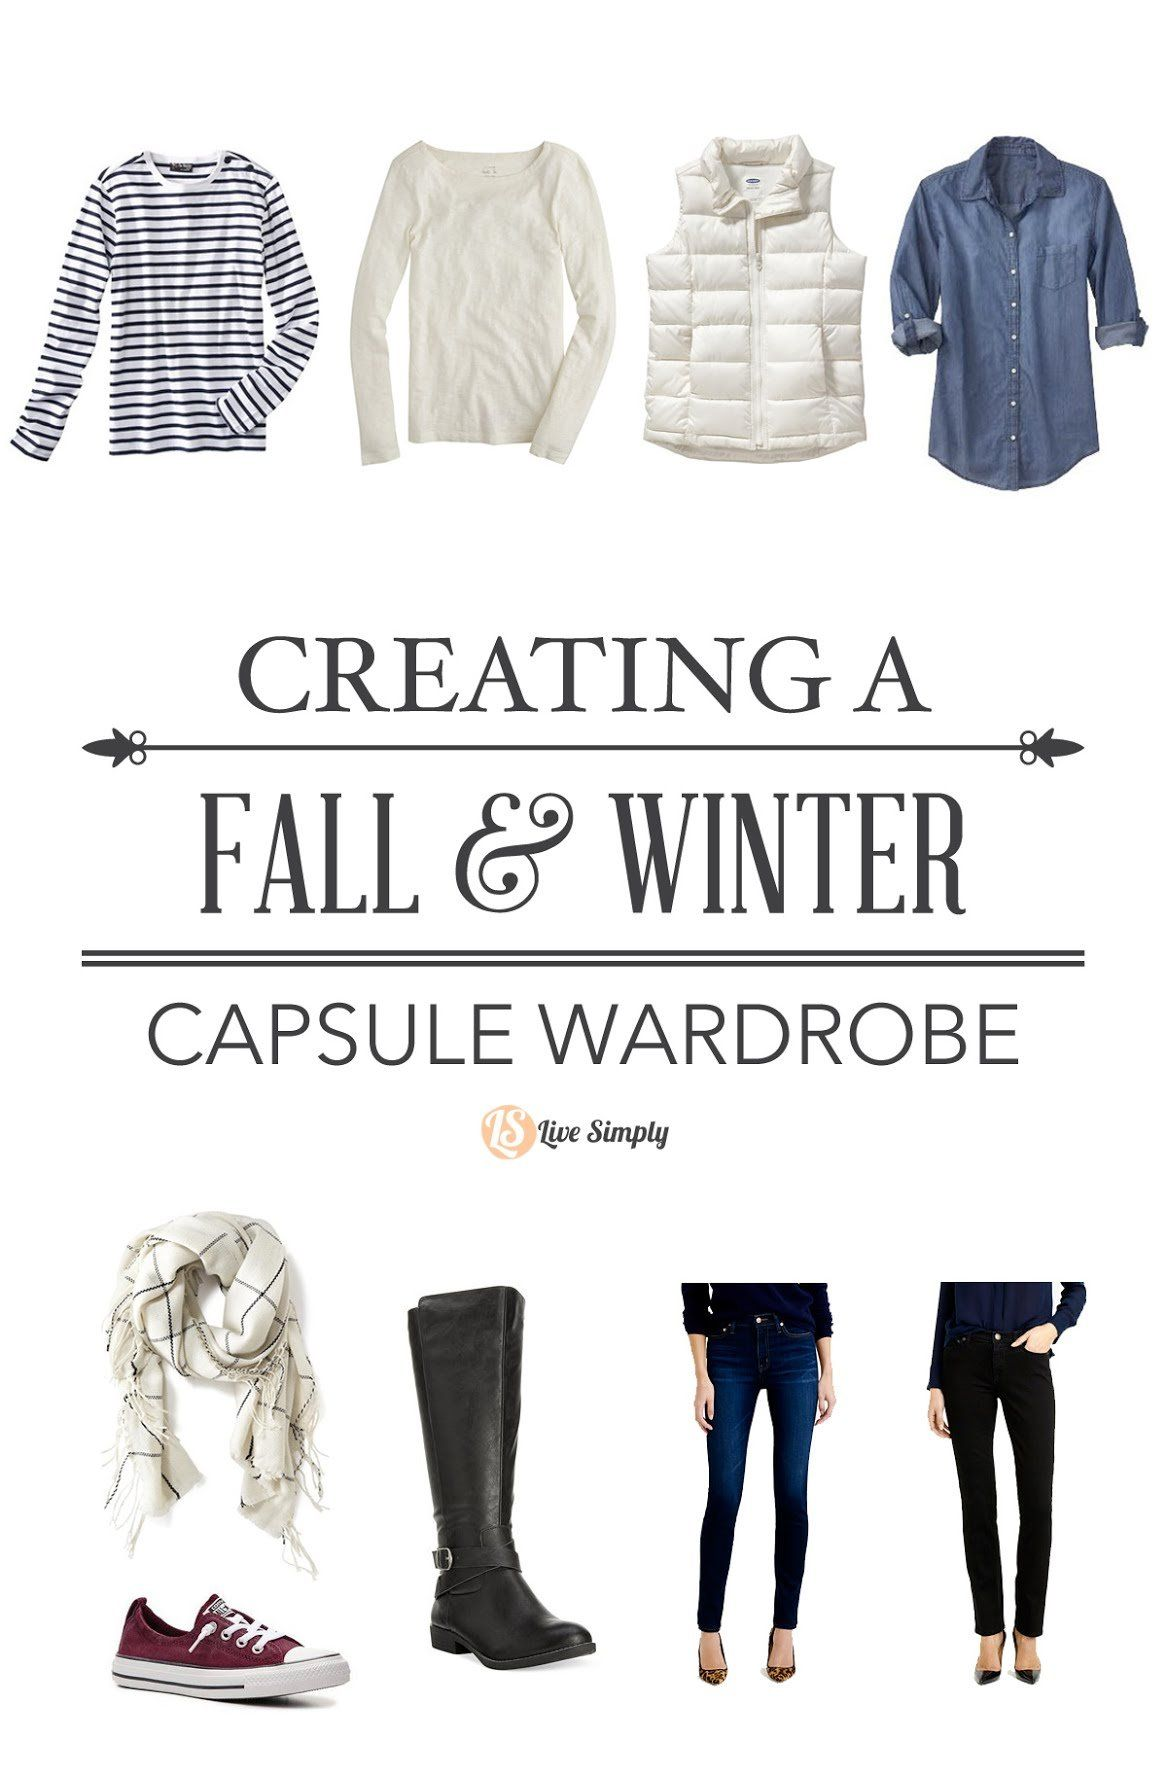 Building A Capsule Wardrobe: How To Build A Capsule